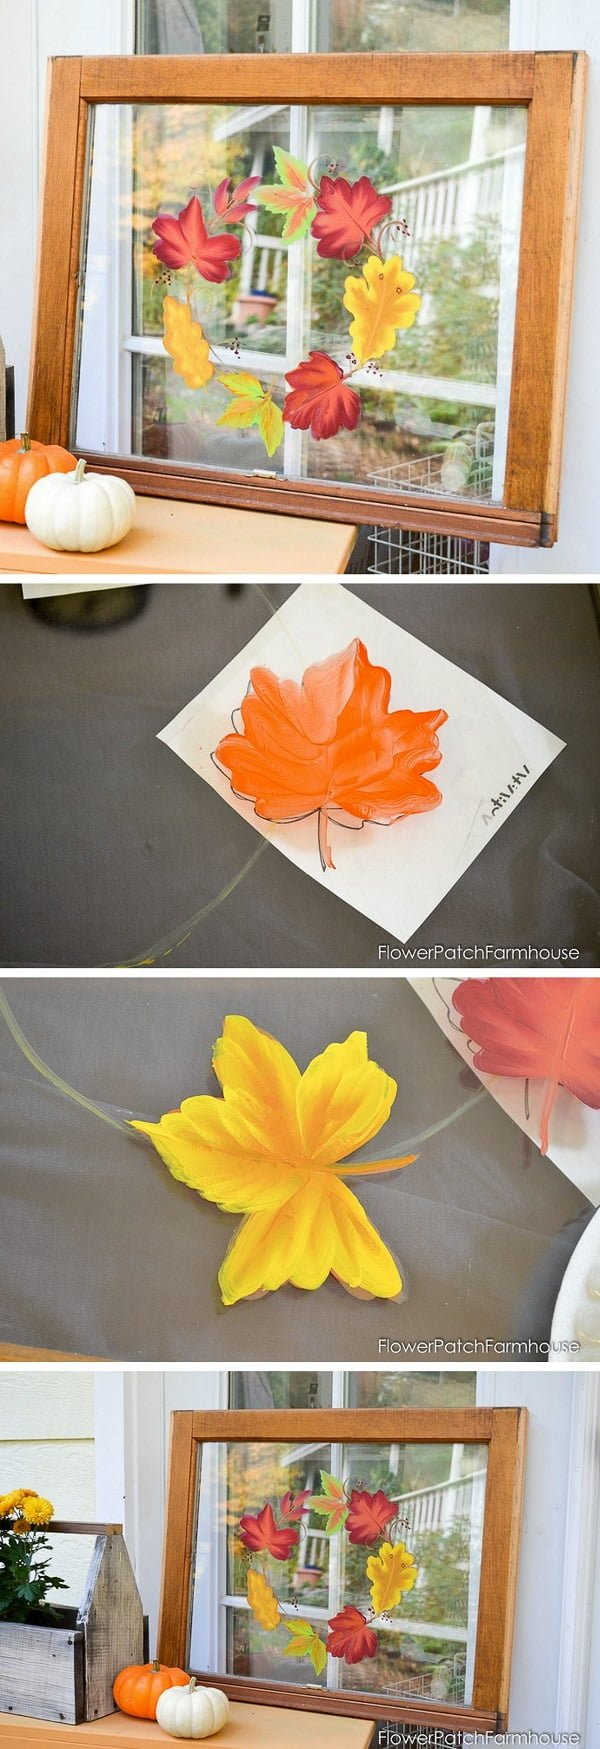 How to make a DIY decorative autumn leaves sign from an old window